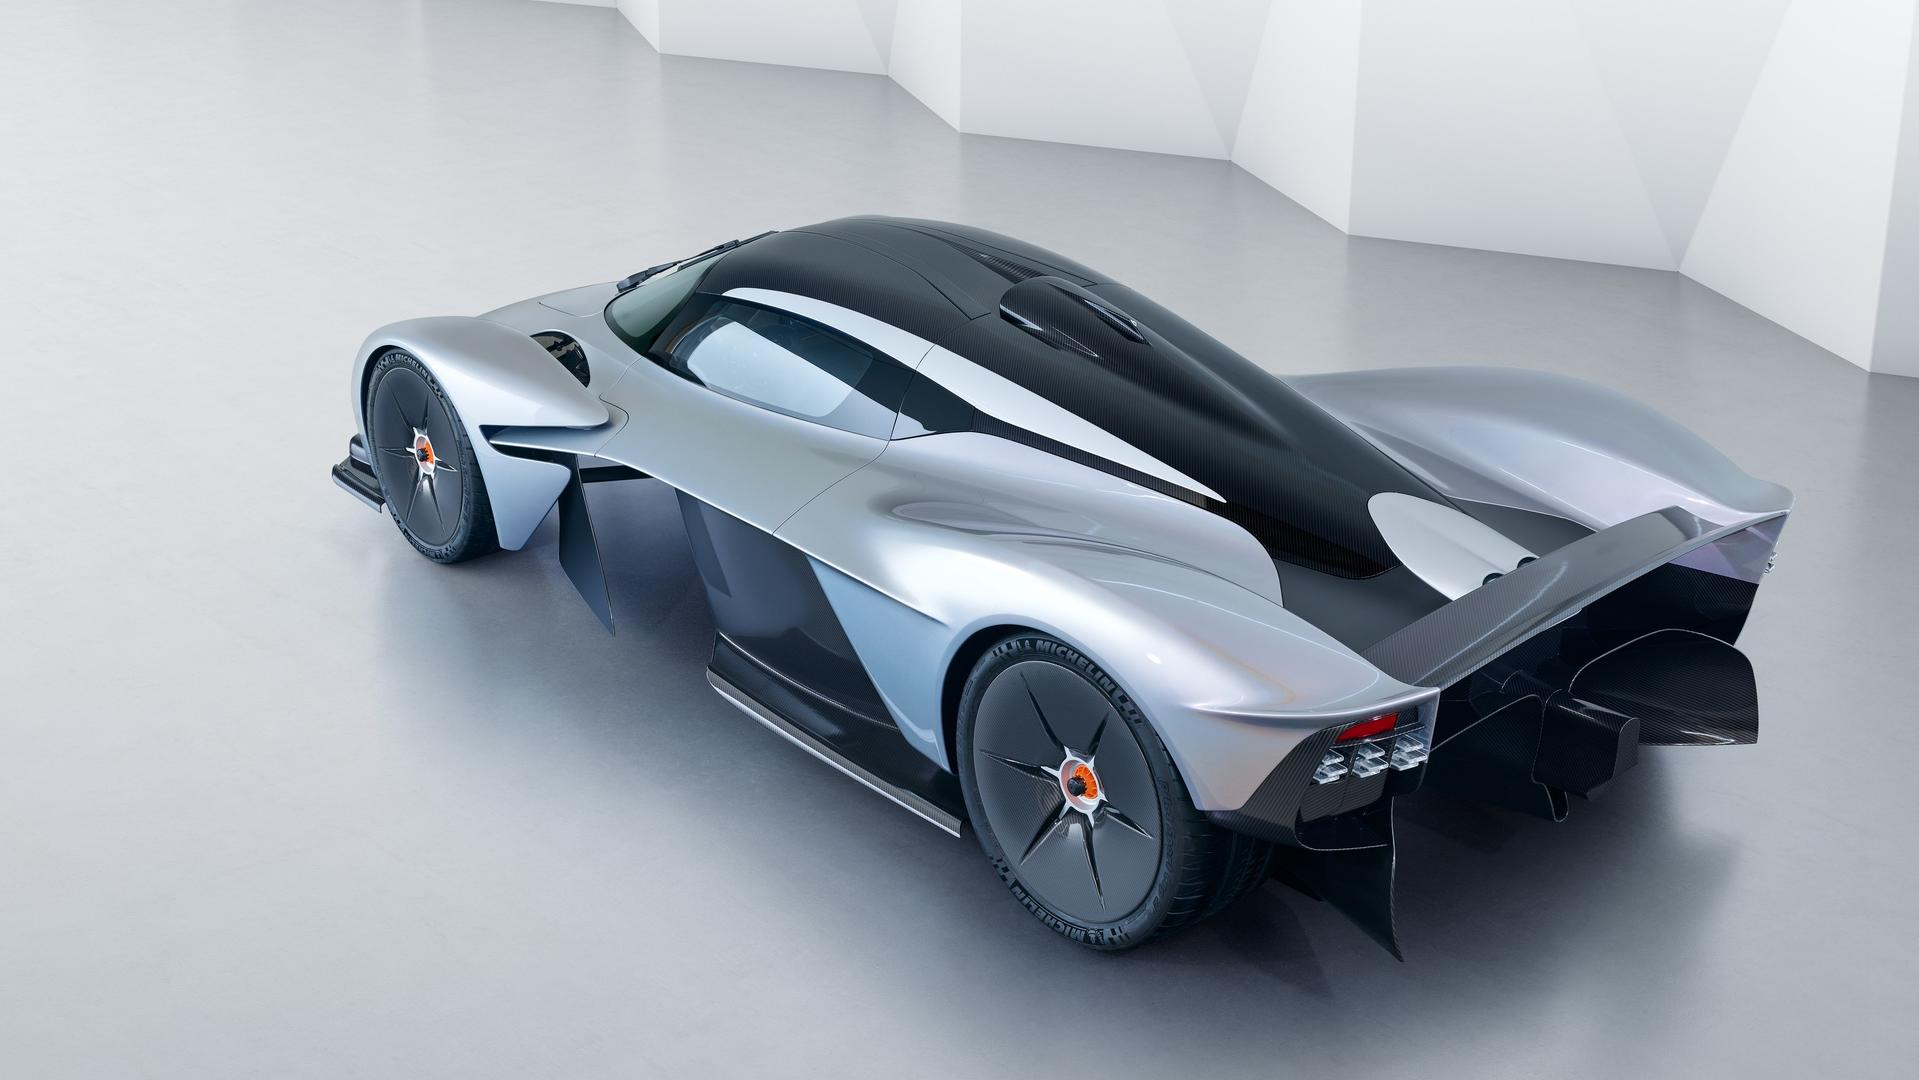 aston-martin-valkyrie-with-near-production-body (8)